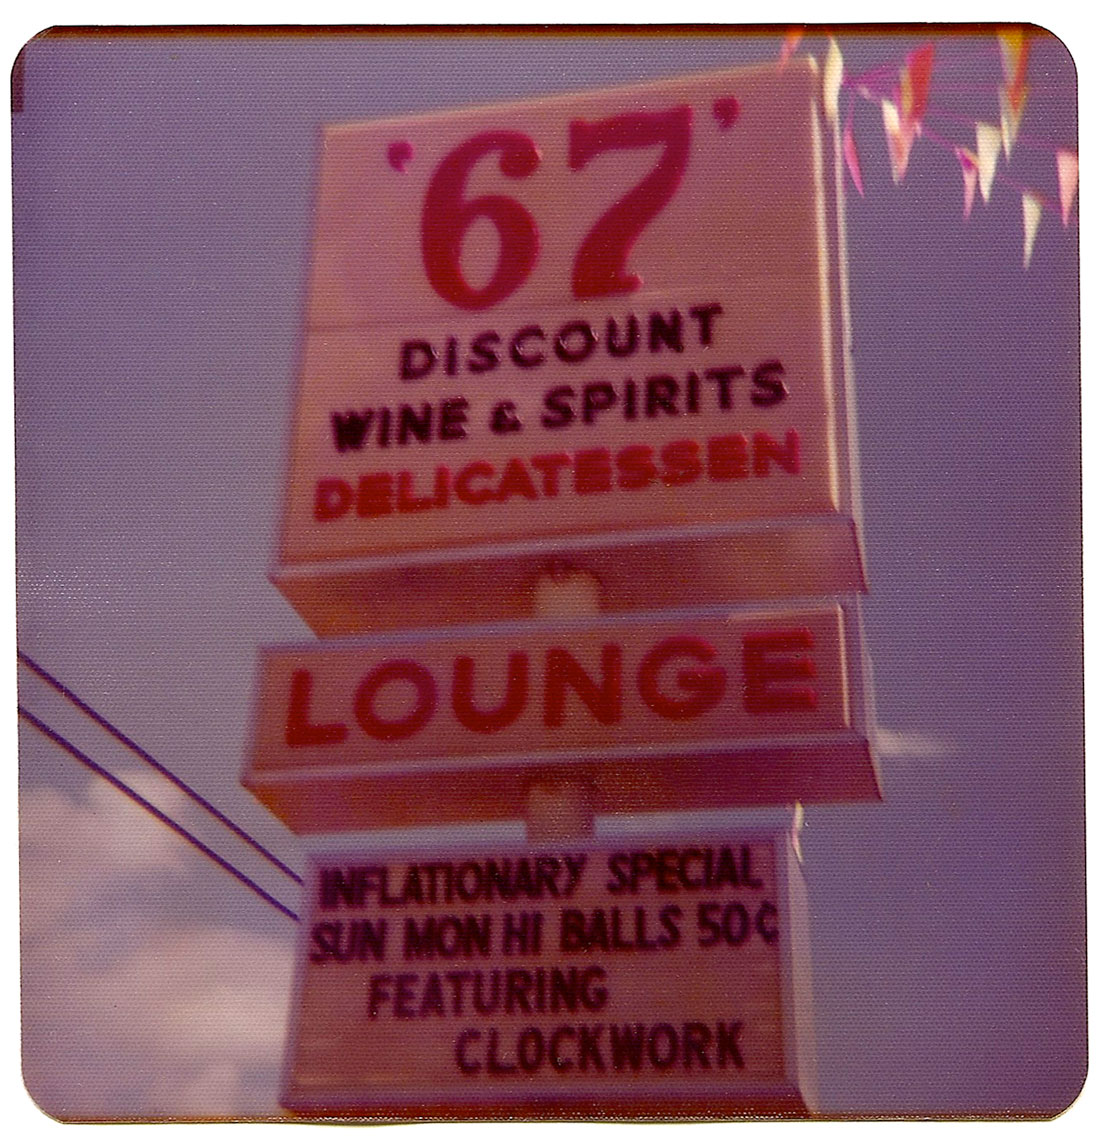 67 Lounge sign